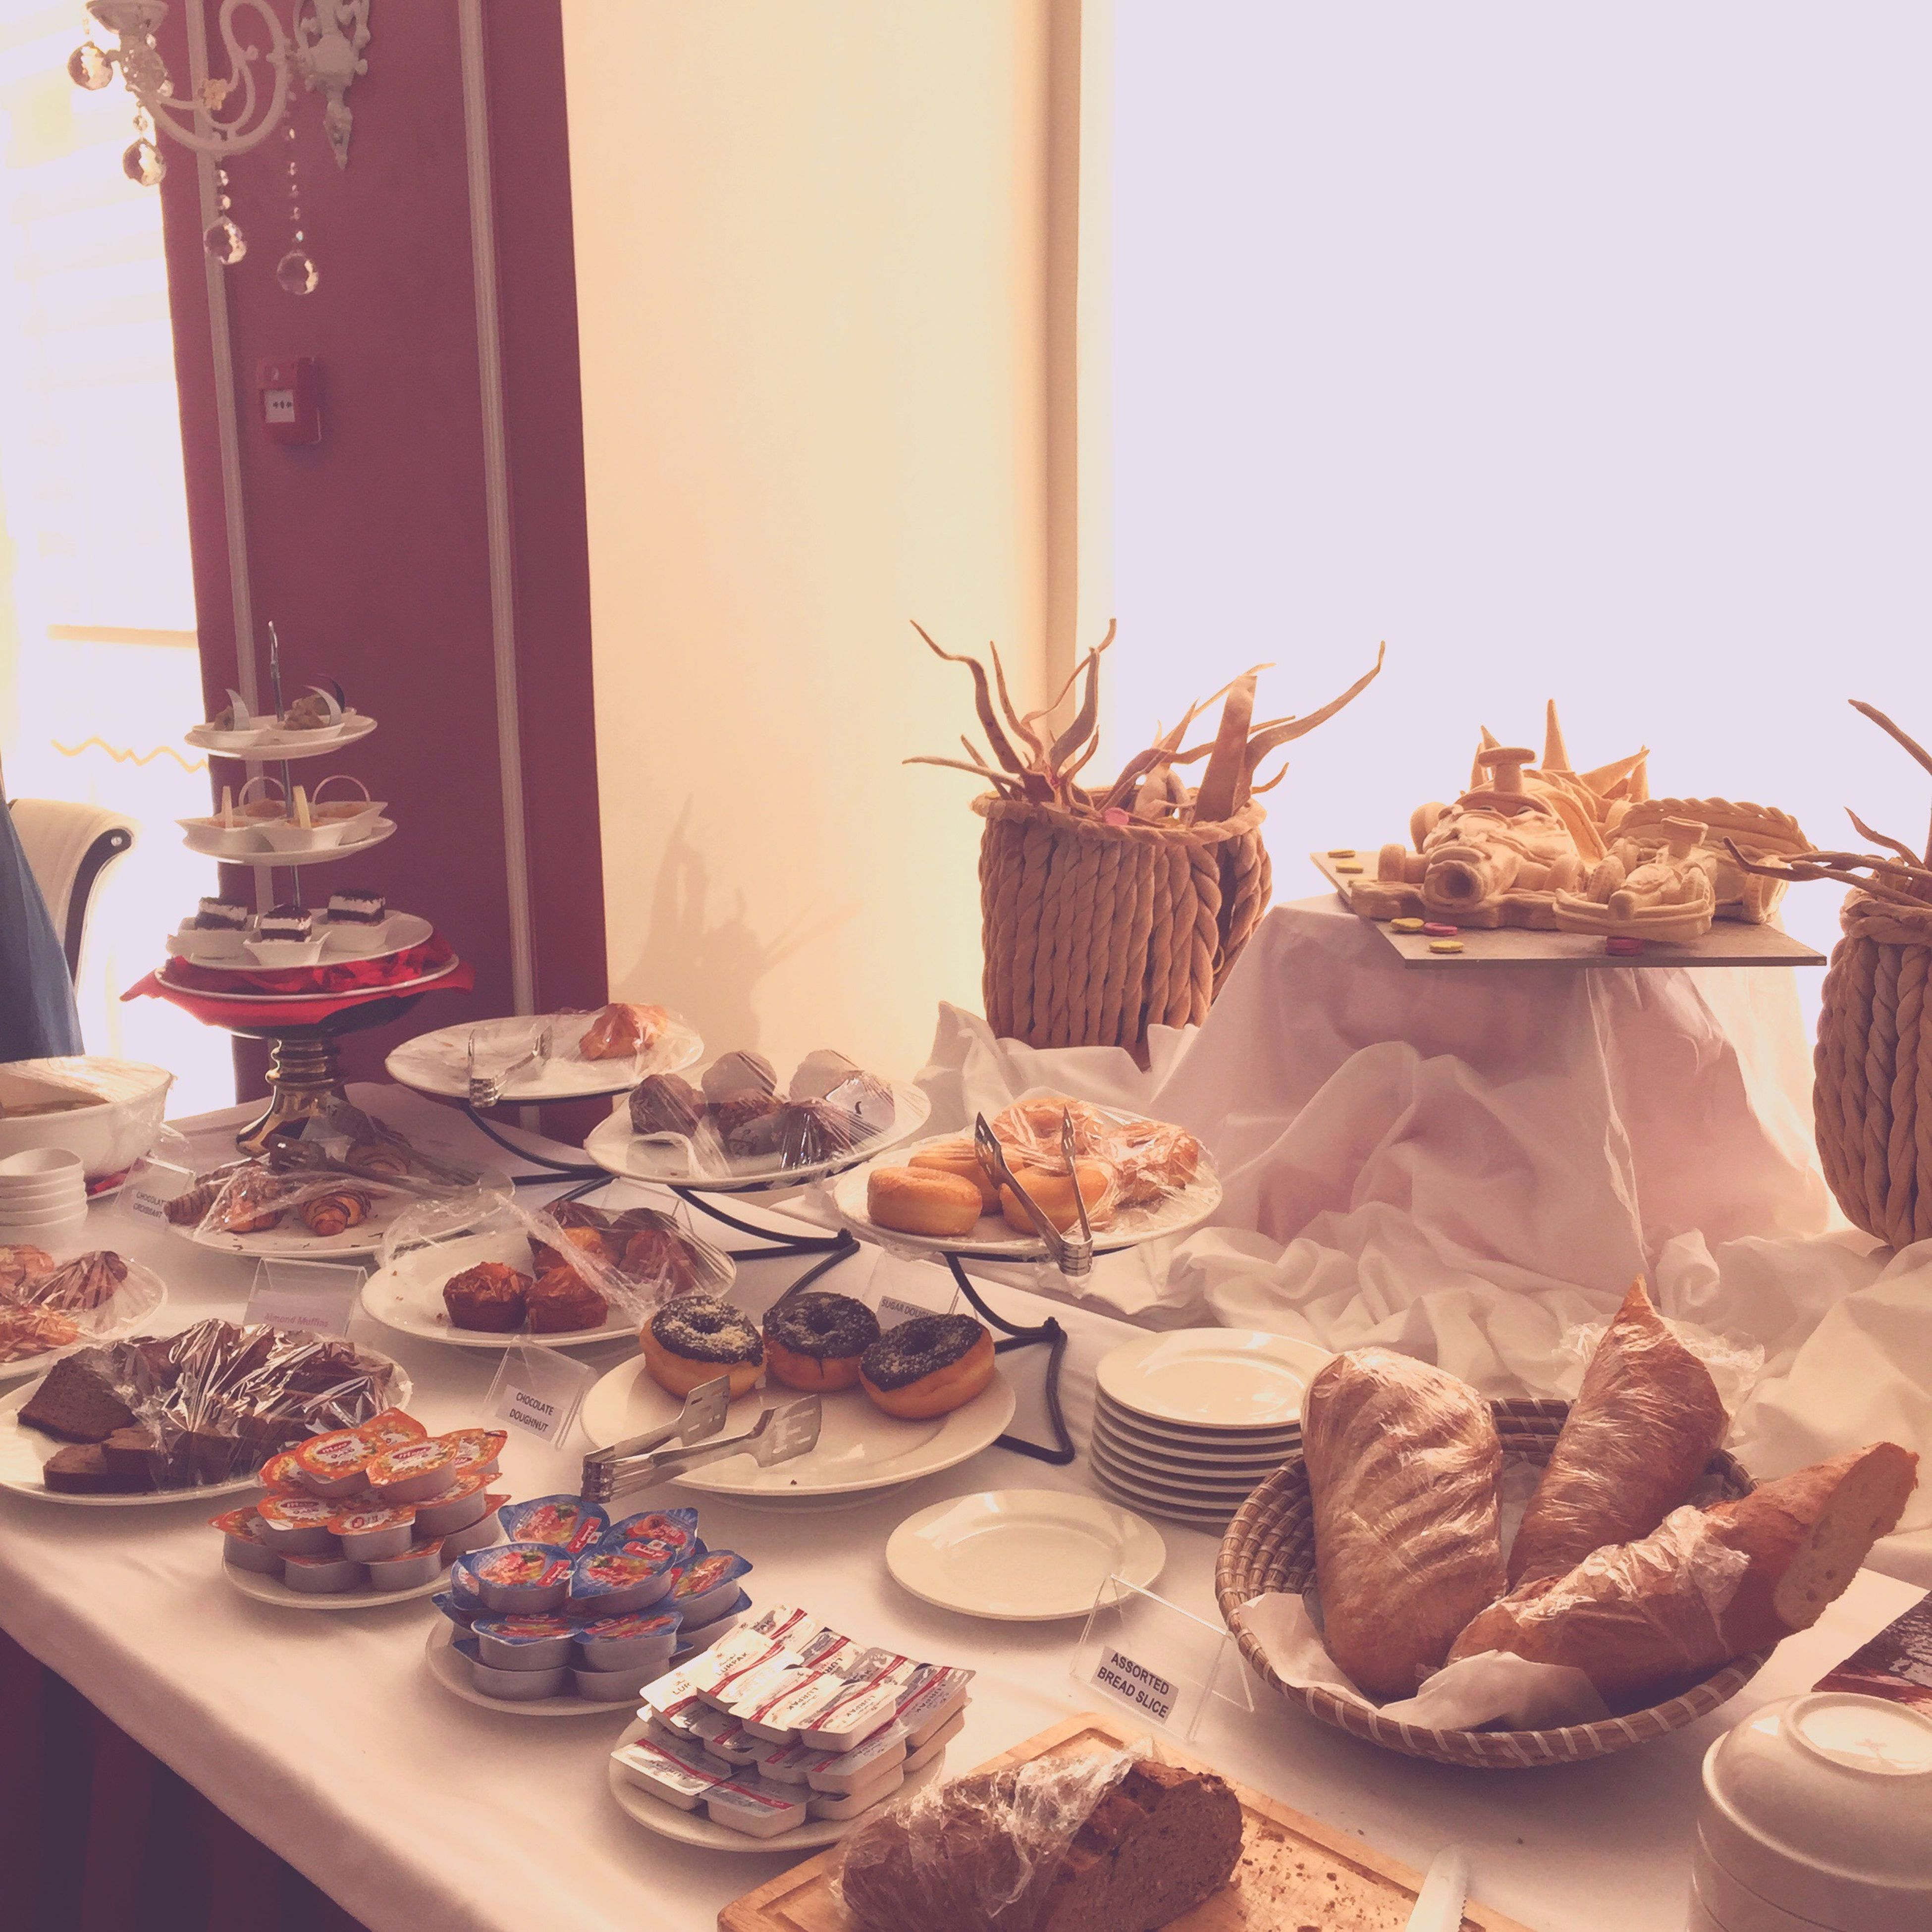 indoors, table, food, still life, food and drink, freshness, plate, home interior, decoration, large group of objects, sweet food, arrangement, no people, variation, glass - material, ready-to-eat, cake, close-up, abundance, dessert